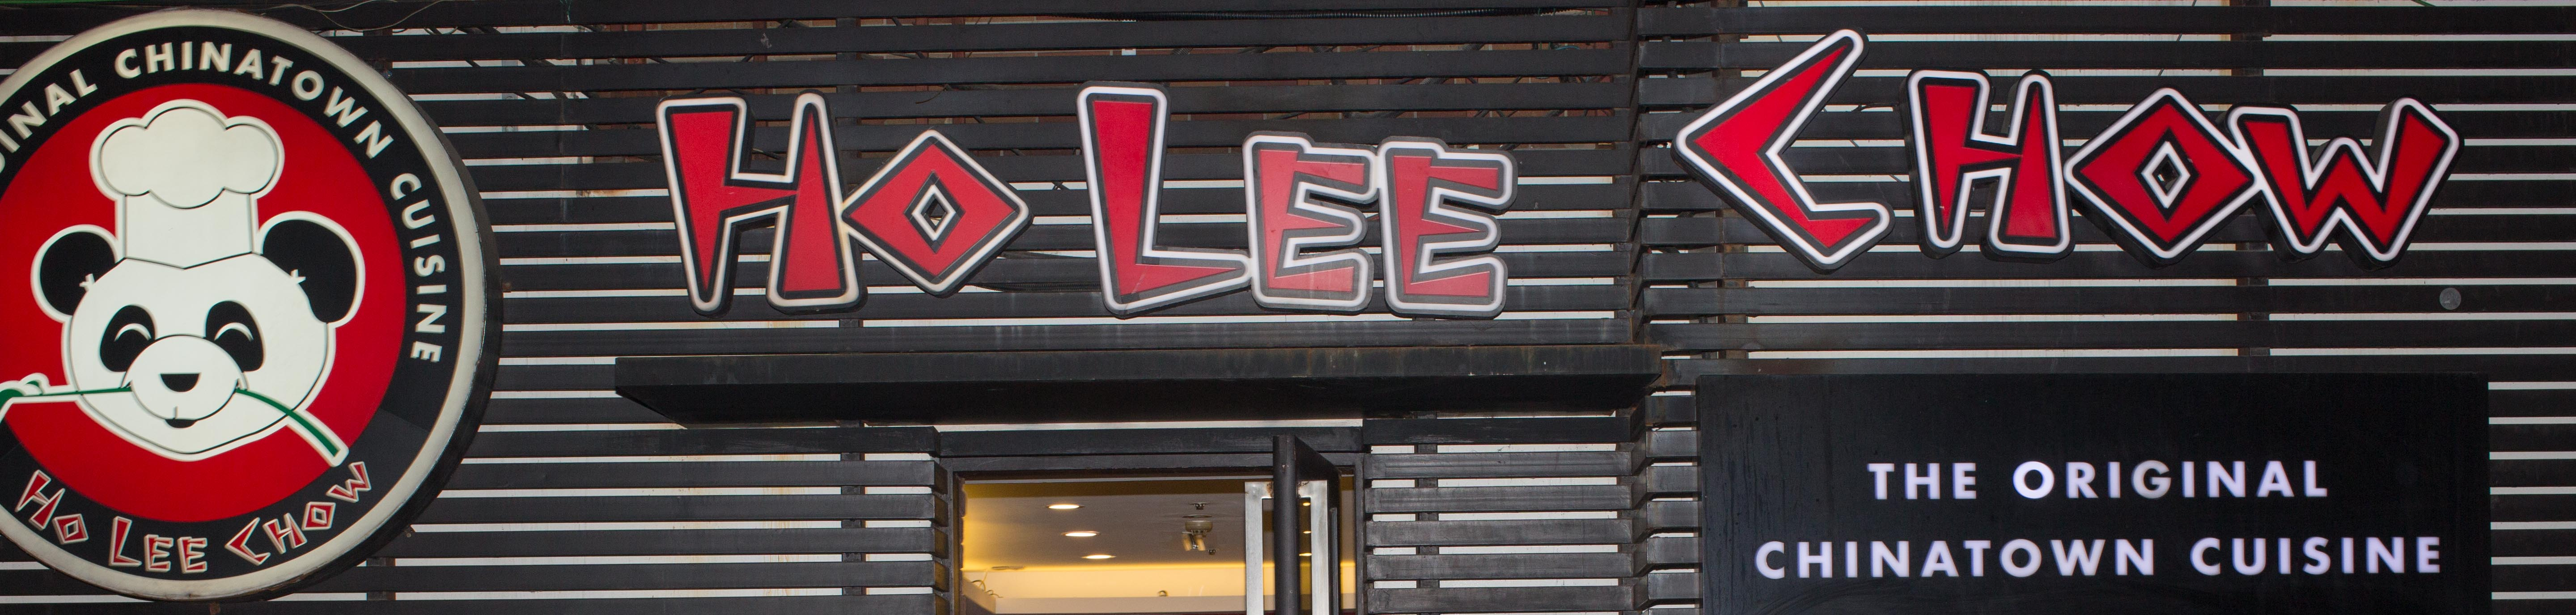 Ho Lee Chow Banner